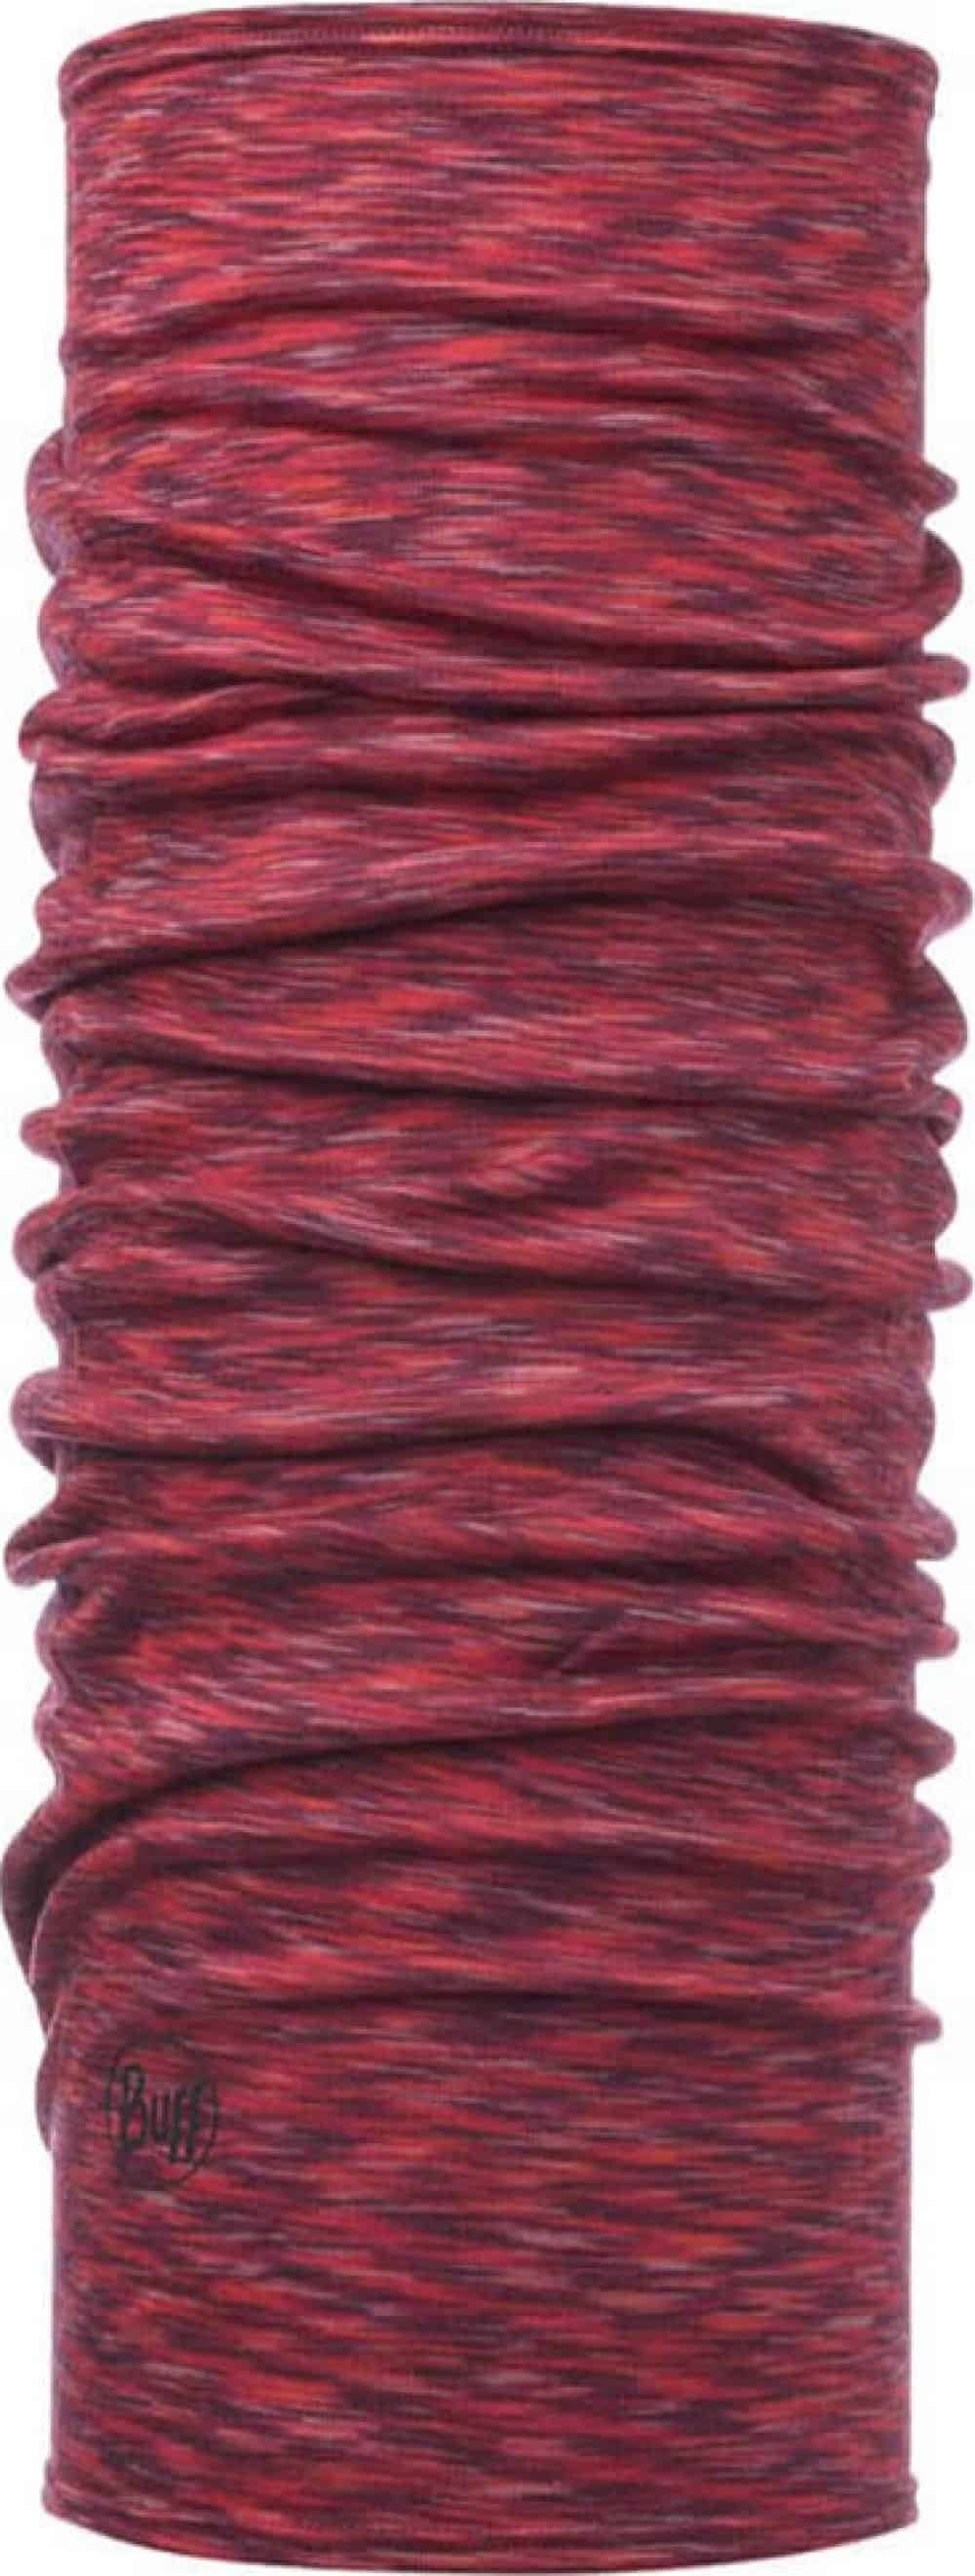 "Studio Photo of the Wool Buff® with design ""Pink"". Source: buff.eu"